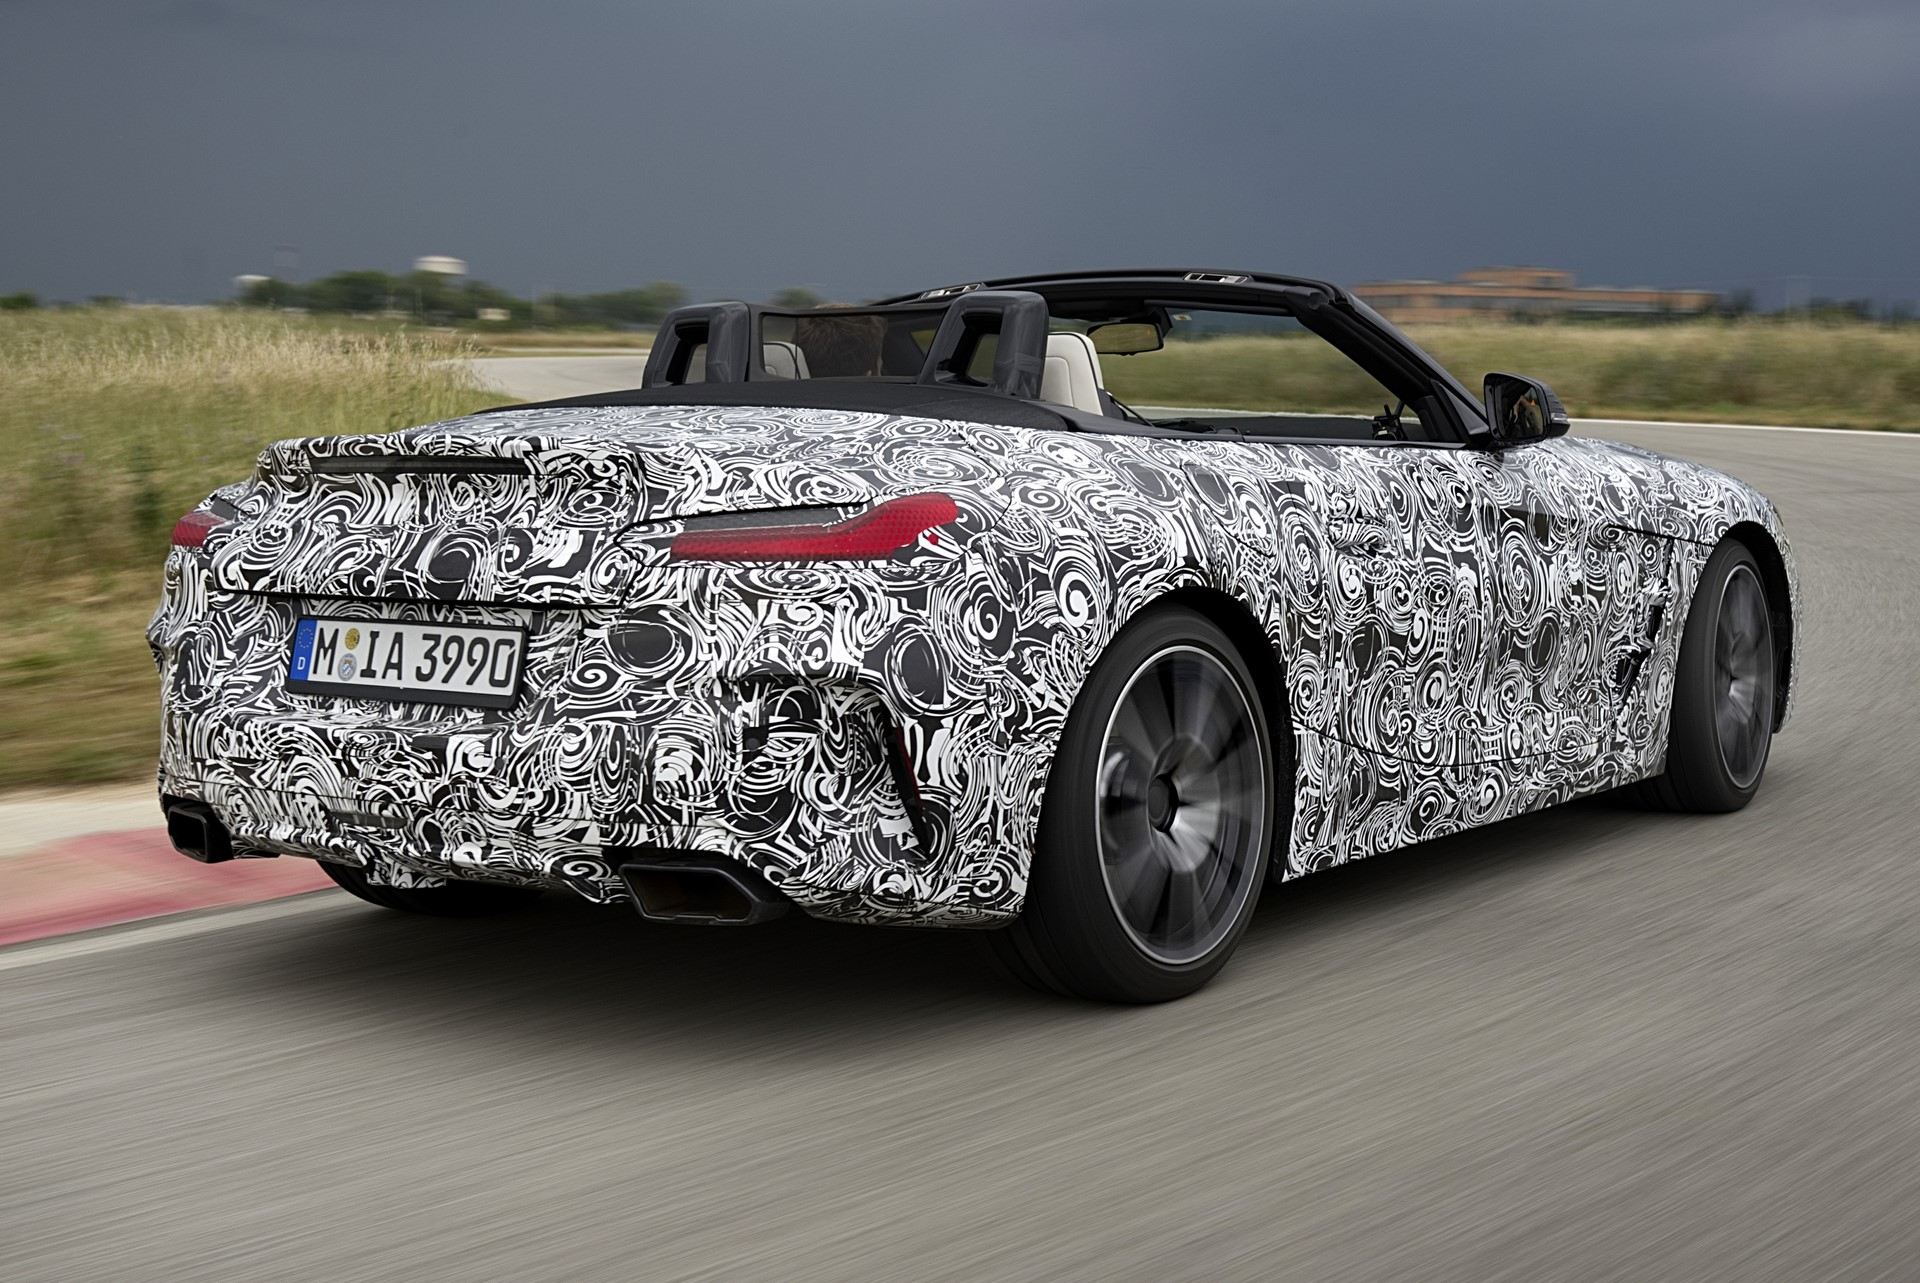 BMW Z4 M40i 2019 official spy photos (15)